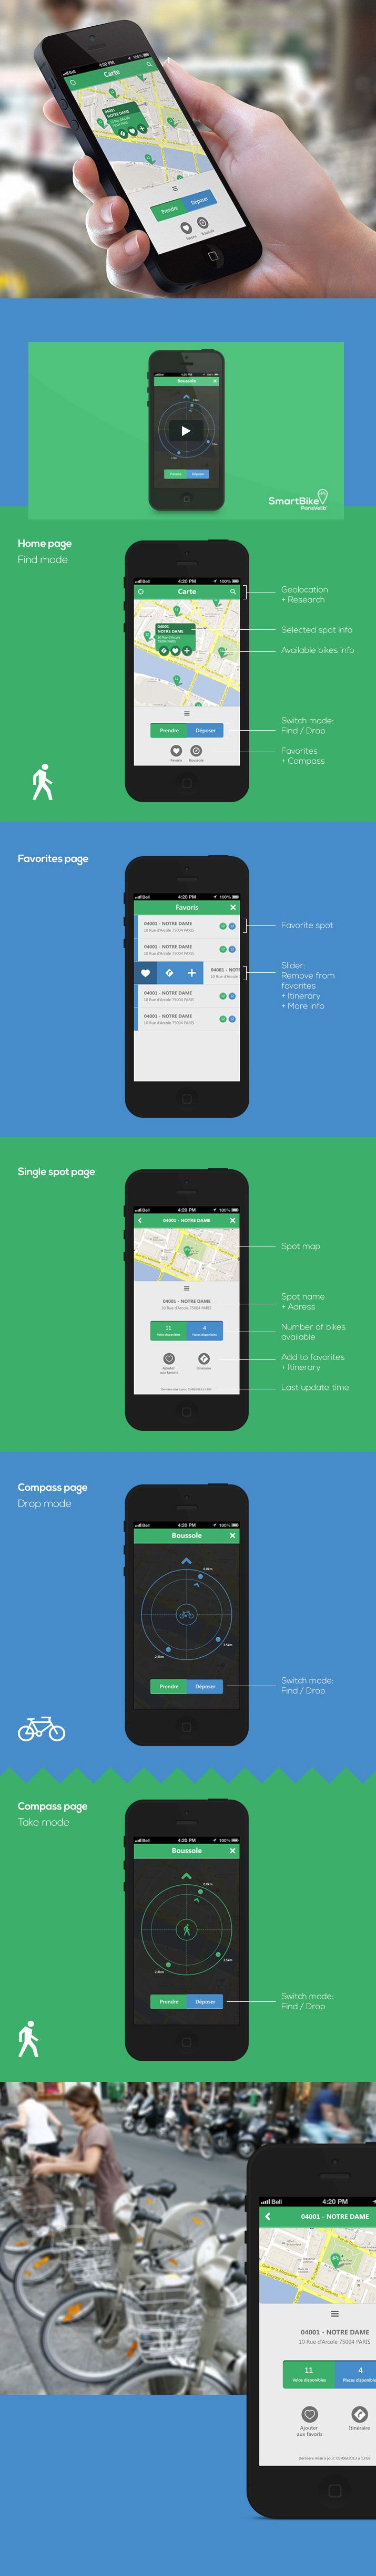 SmartBike App. For more details visit http://mobilewebmds.com/mobile-apps/